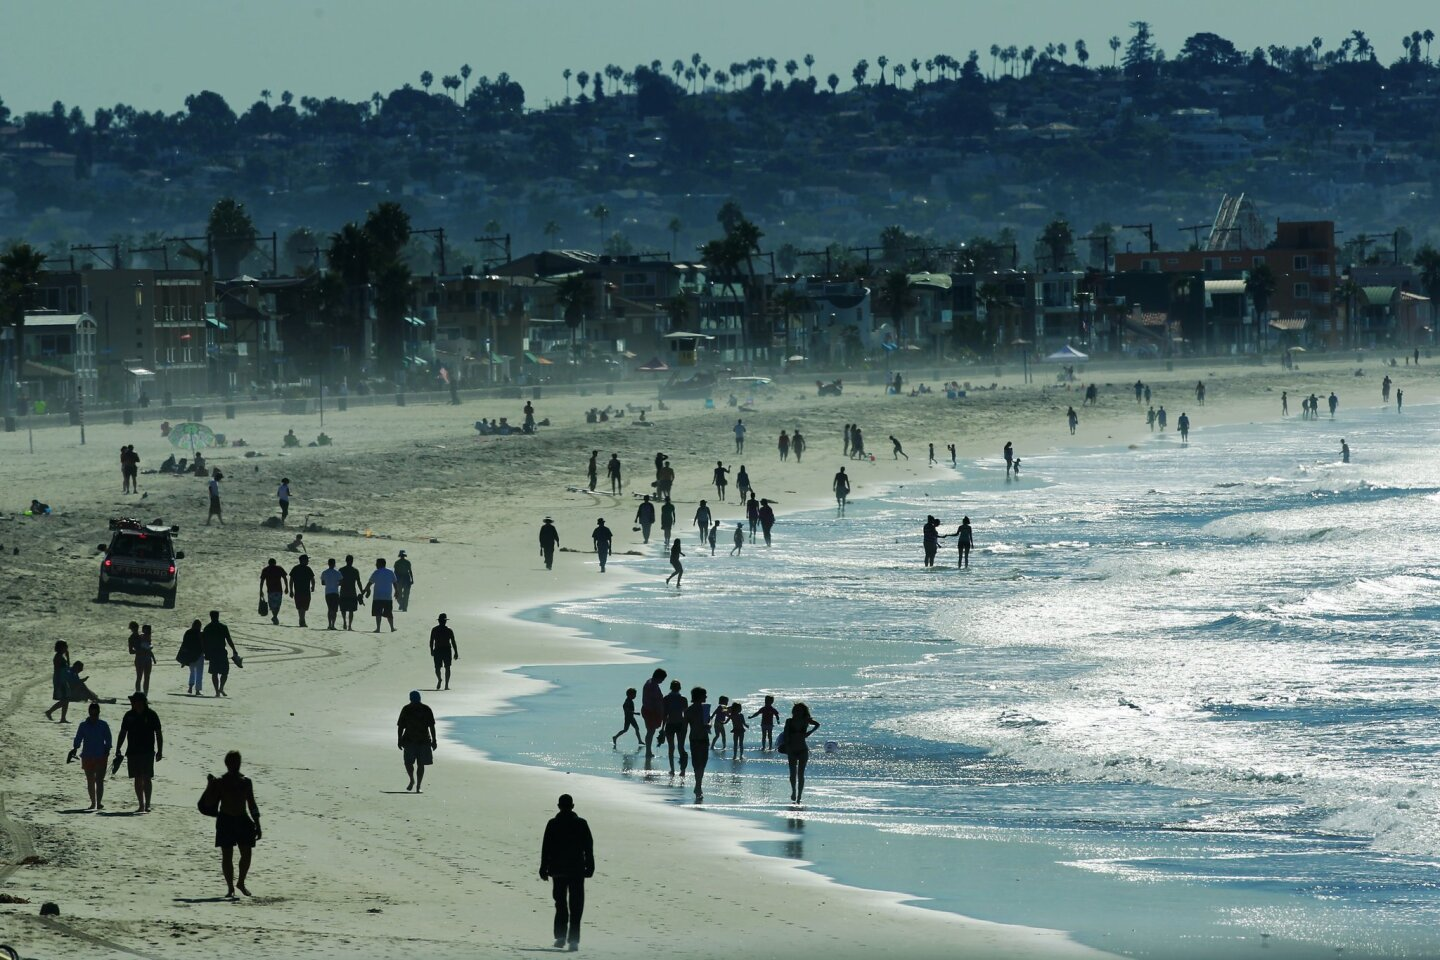 Beach goers enjoy a warm afternoon in Pacific Beach.